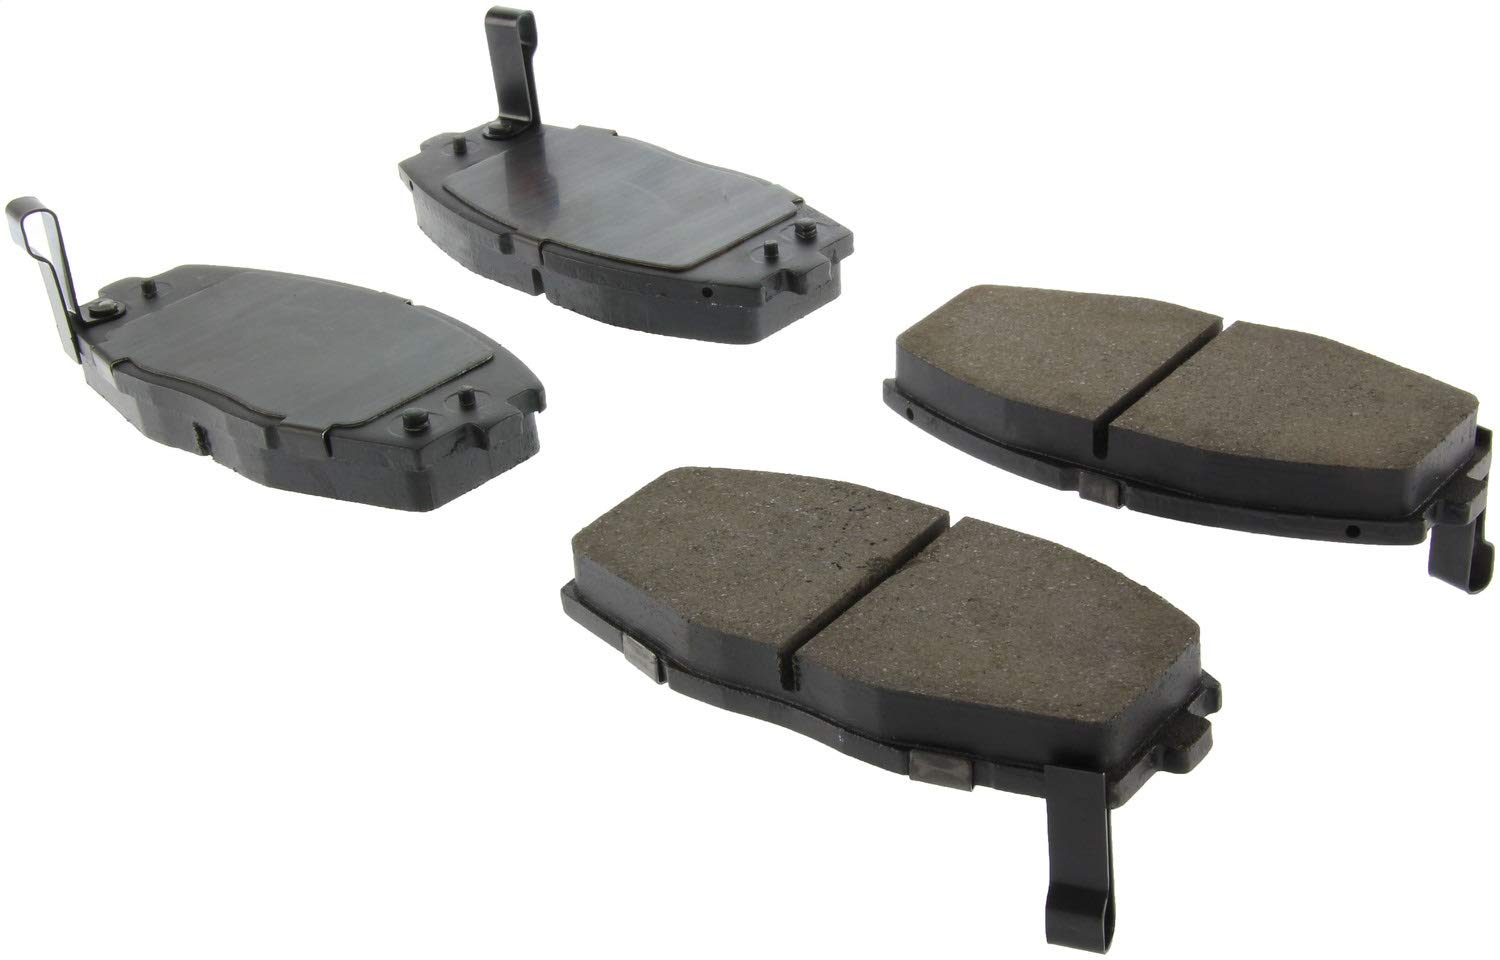 StopTech 305.04350 Street Select Brake Pads 5 Pack